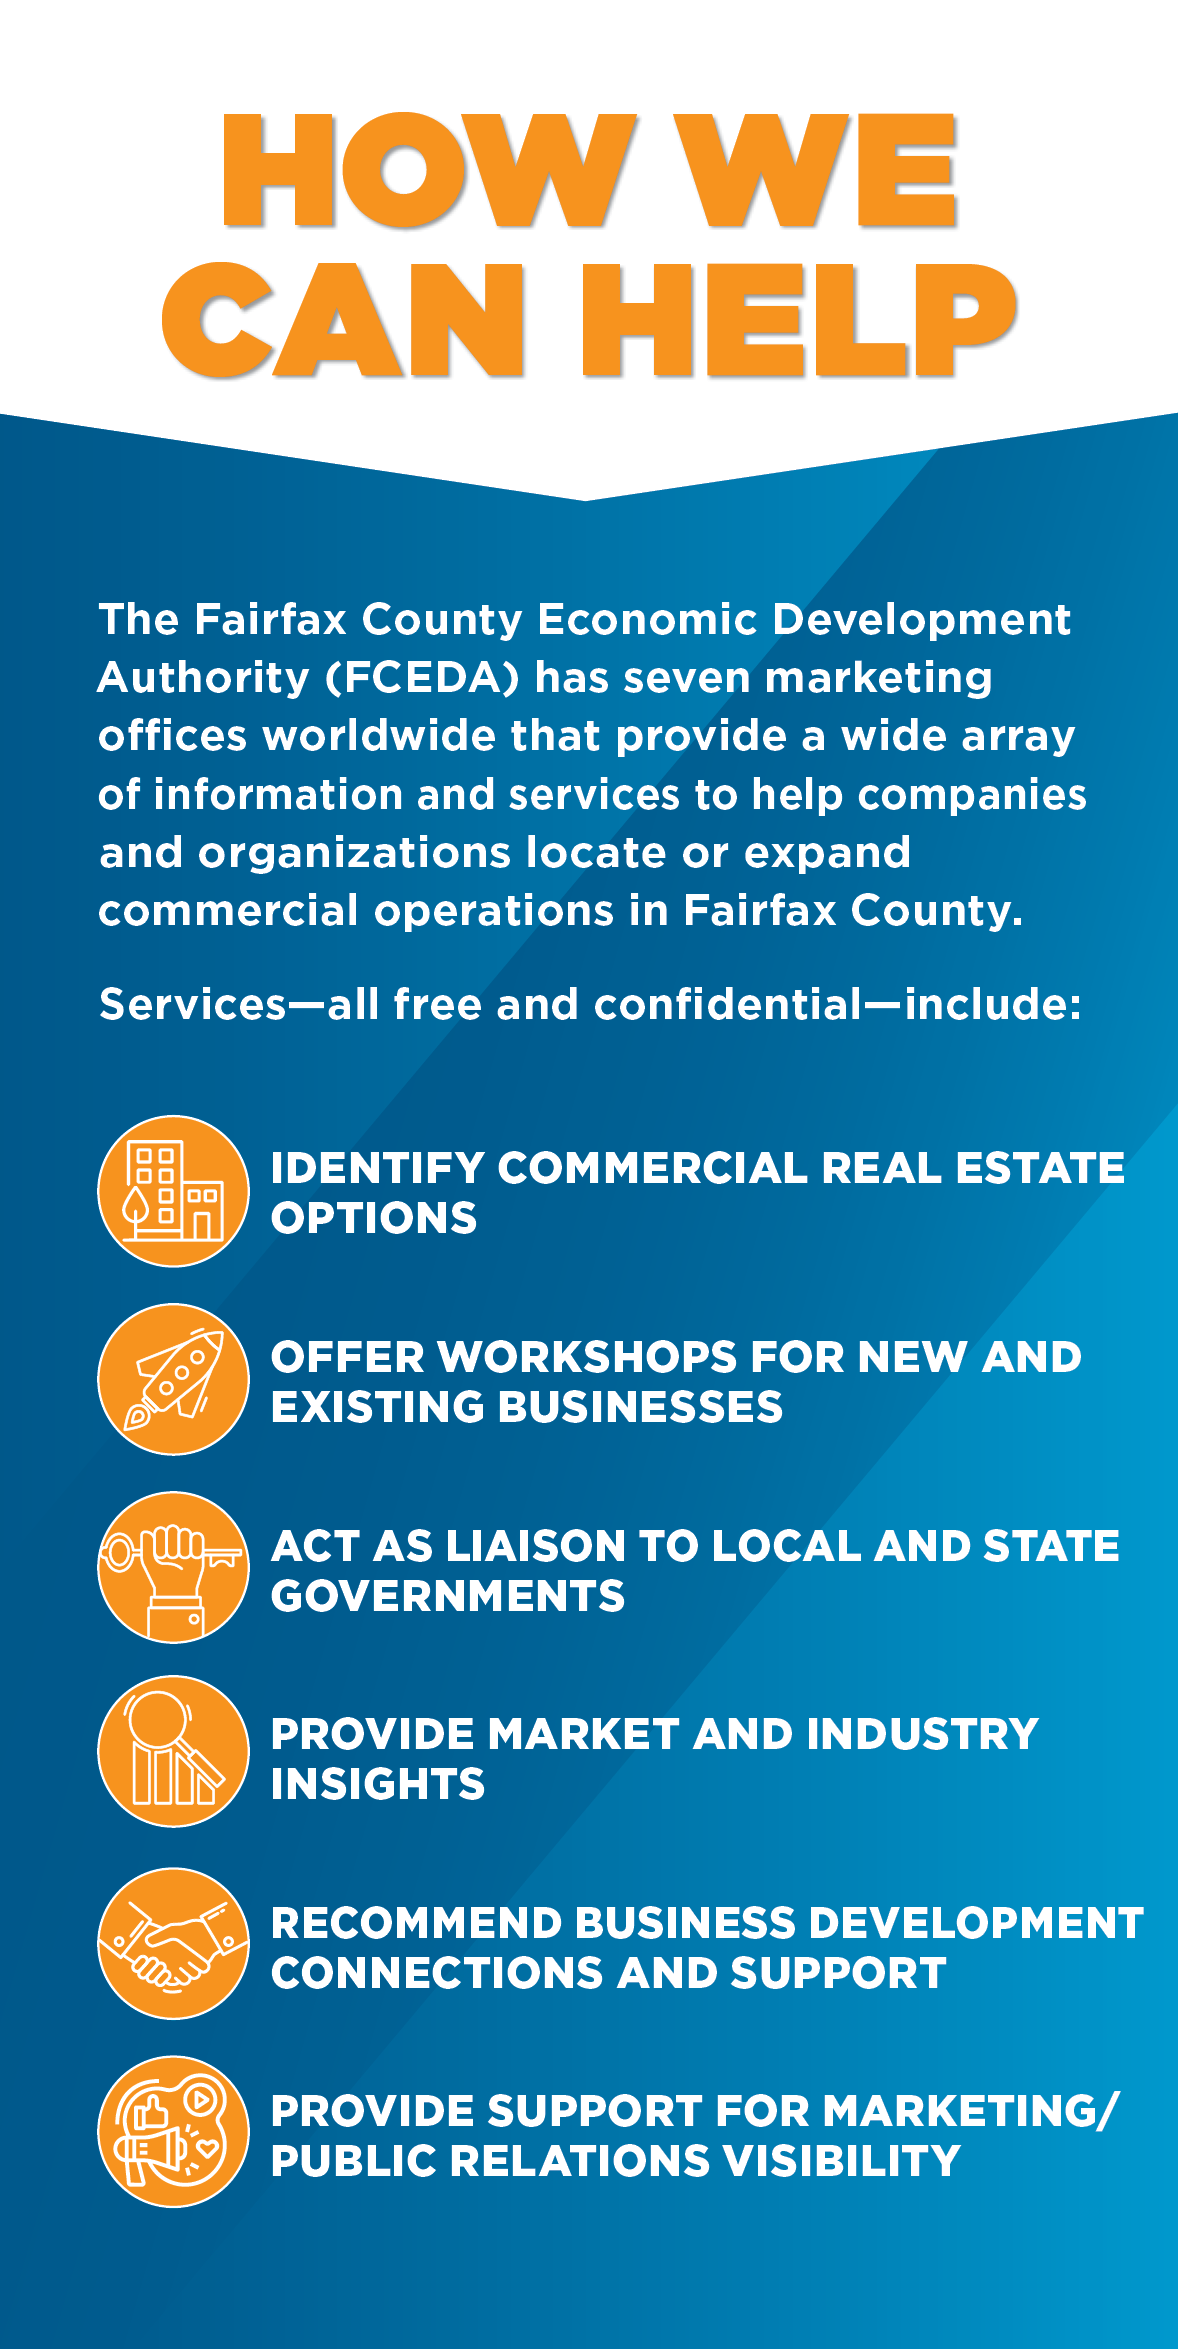 how-we-can-help-international